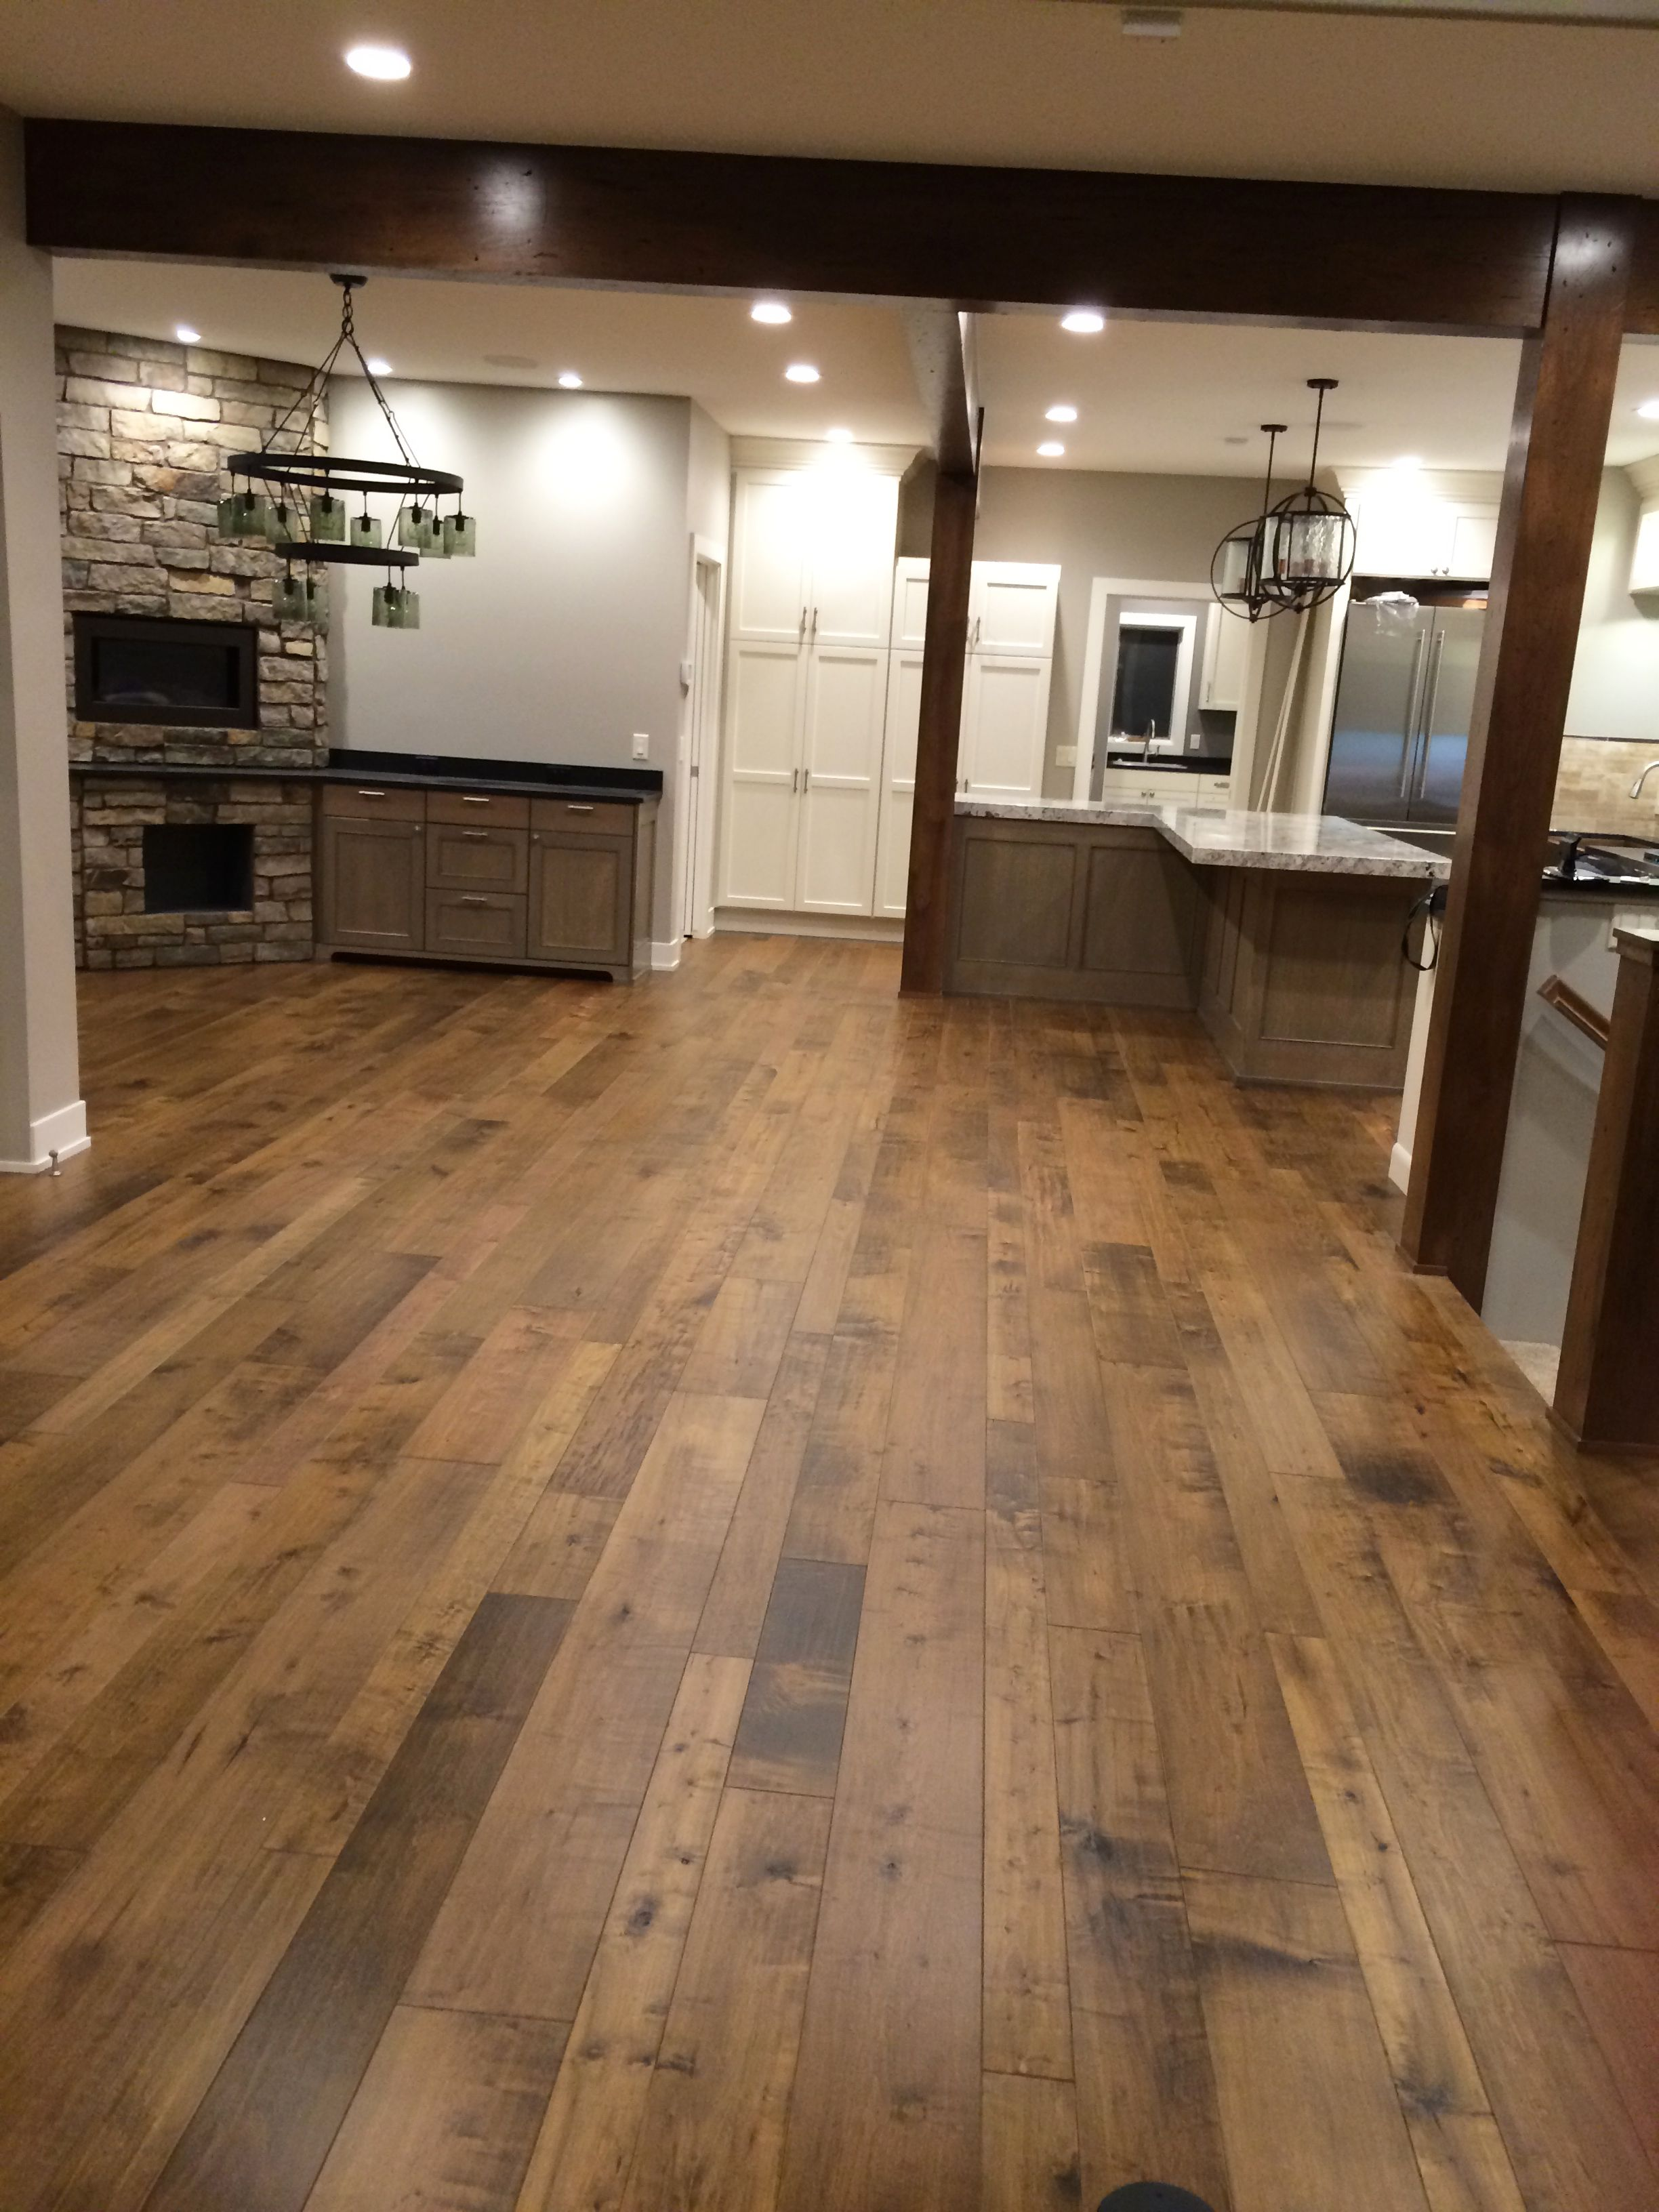 Simple tips to install hardwood flooring